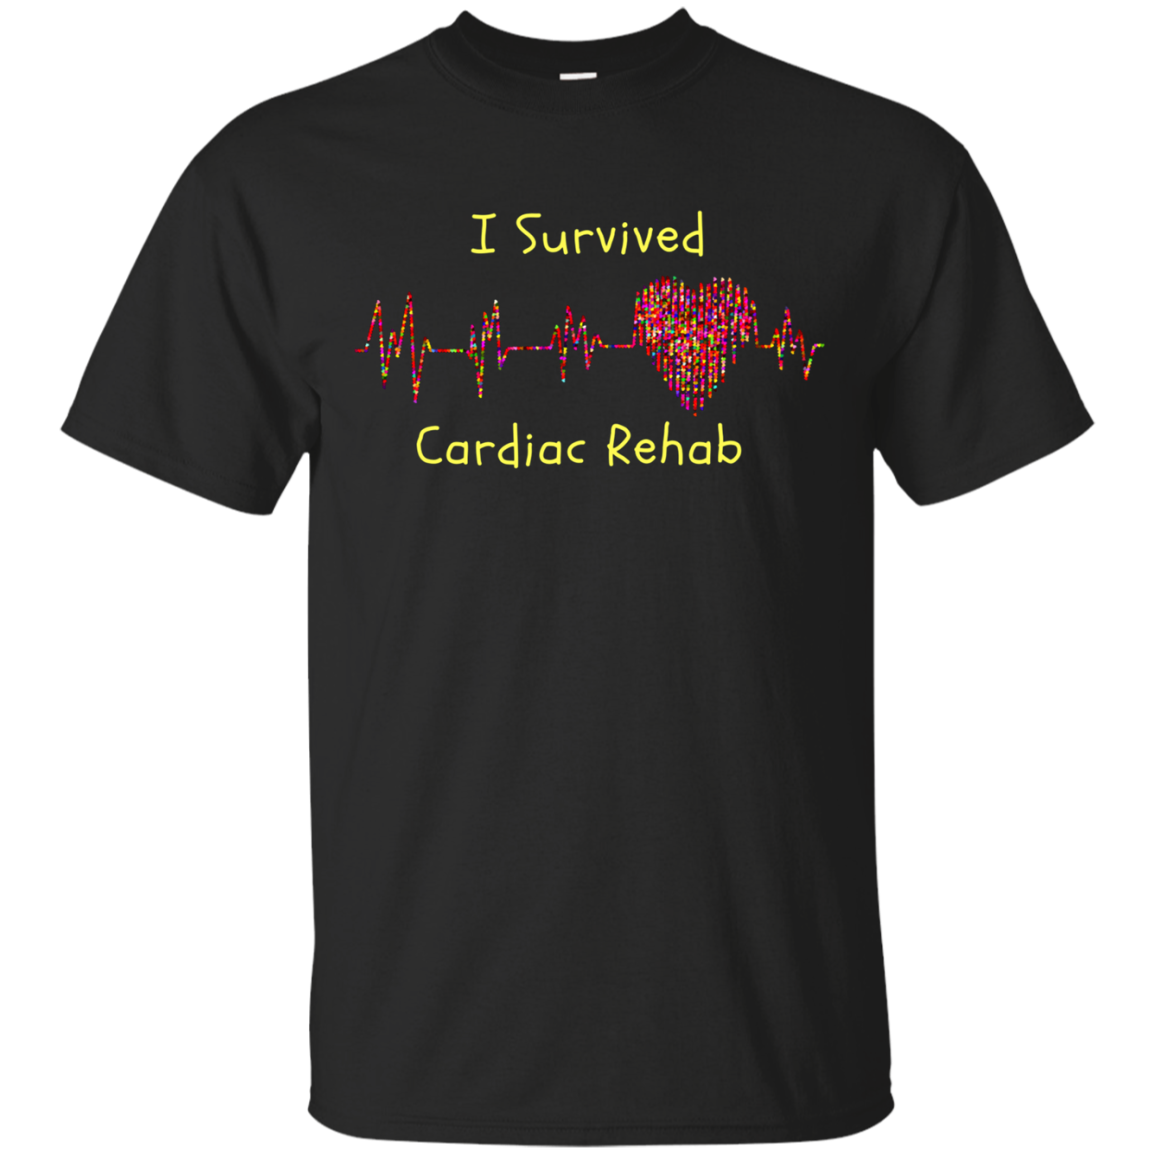 I Survived Cardiac Rehab T-Shirt